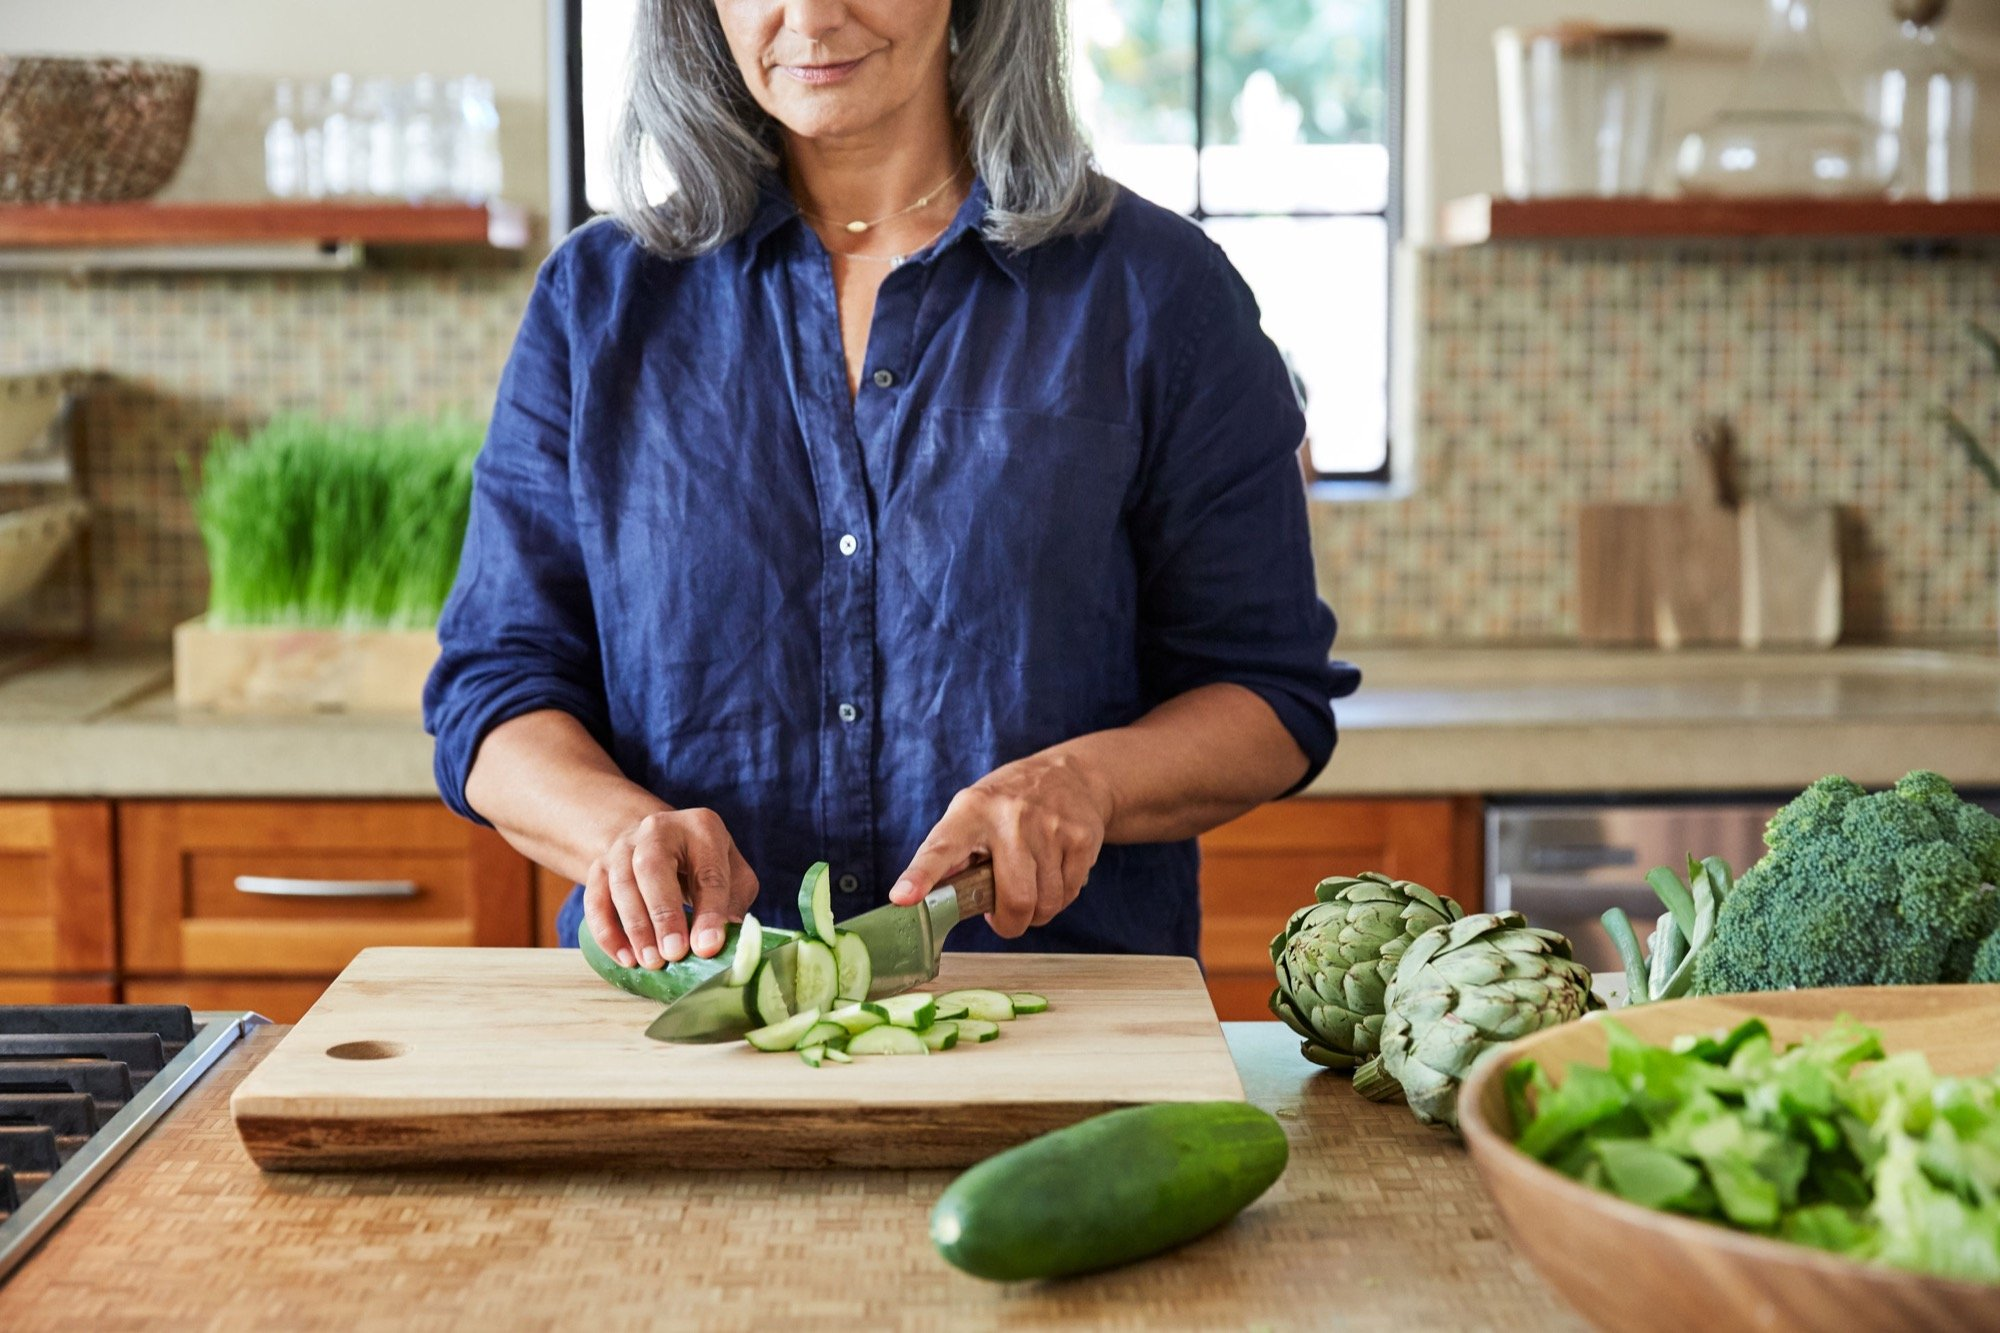 Mature woman cutting vegetables in clean kitchen to prevent foodborne illness.